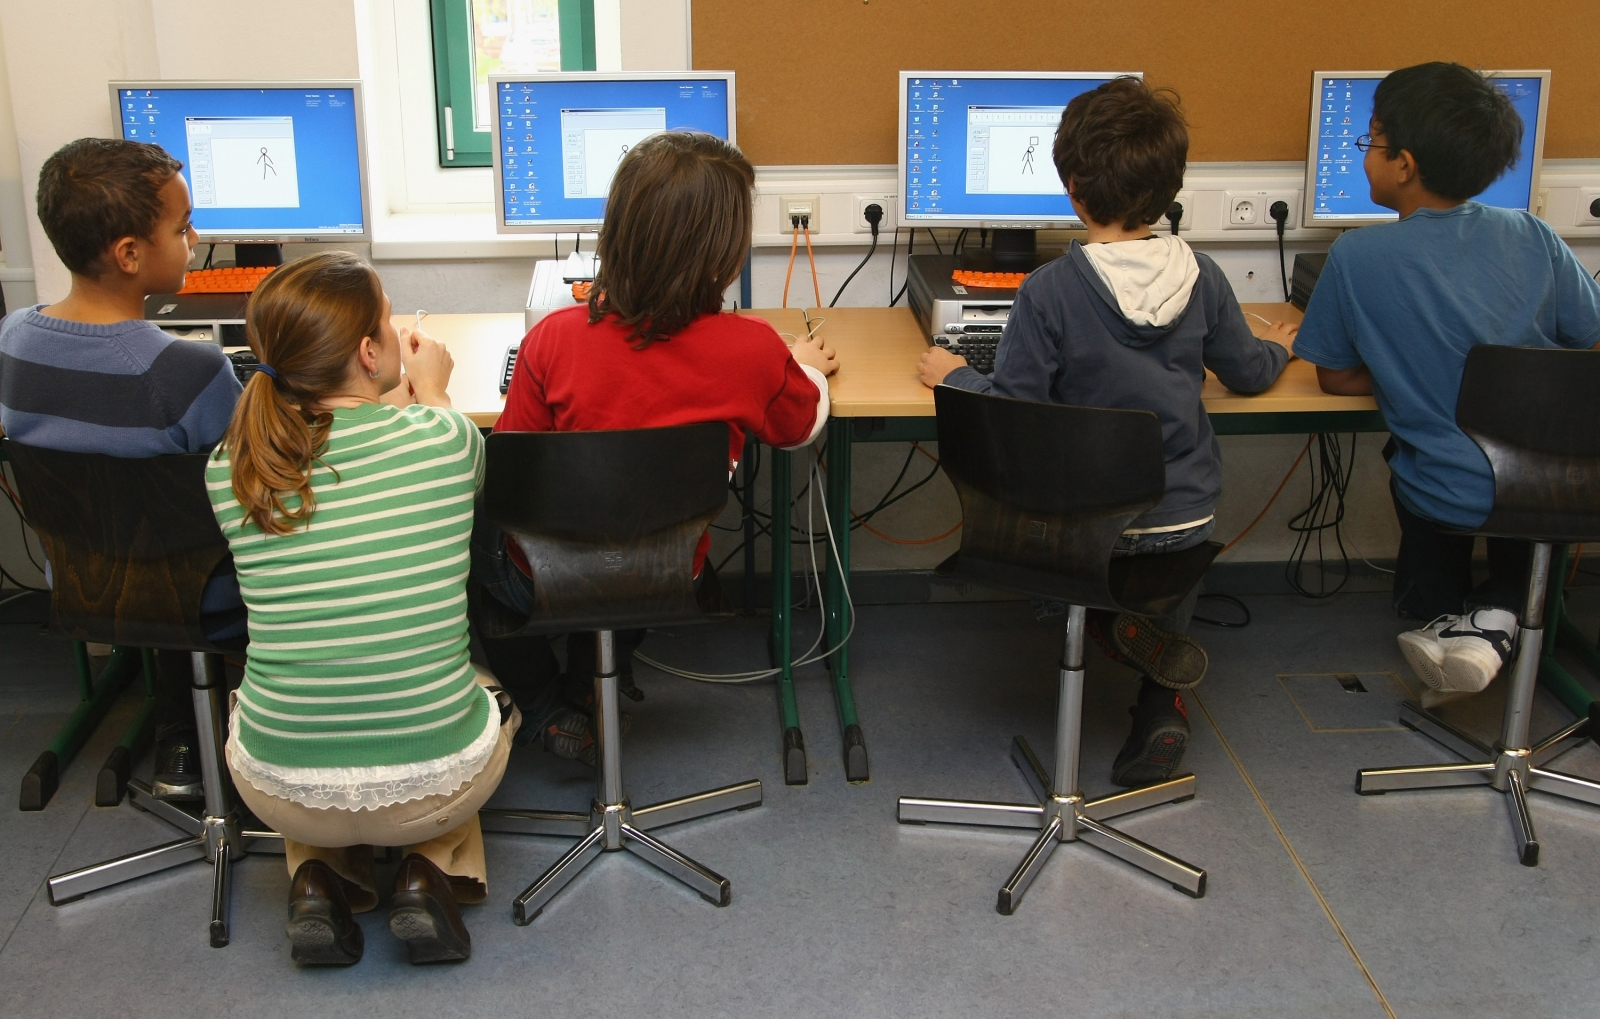 Has technology's role in education failed?